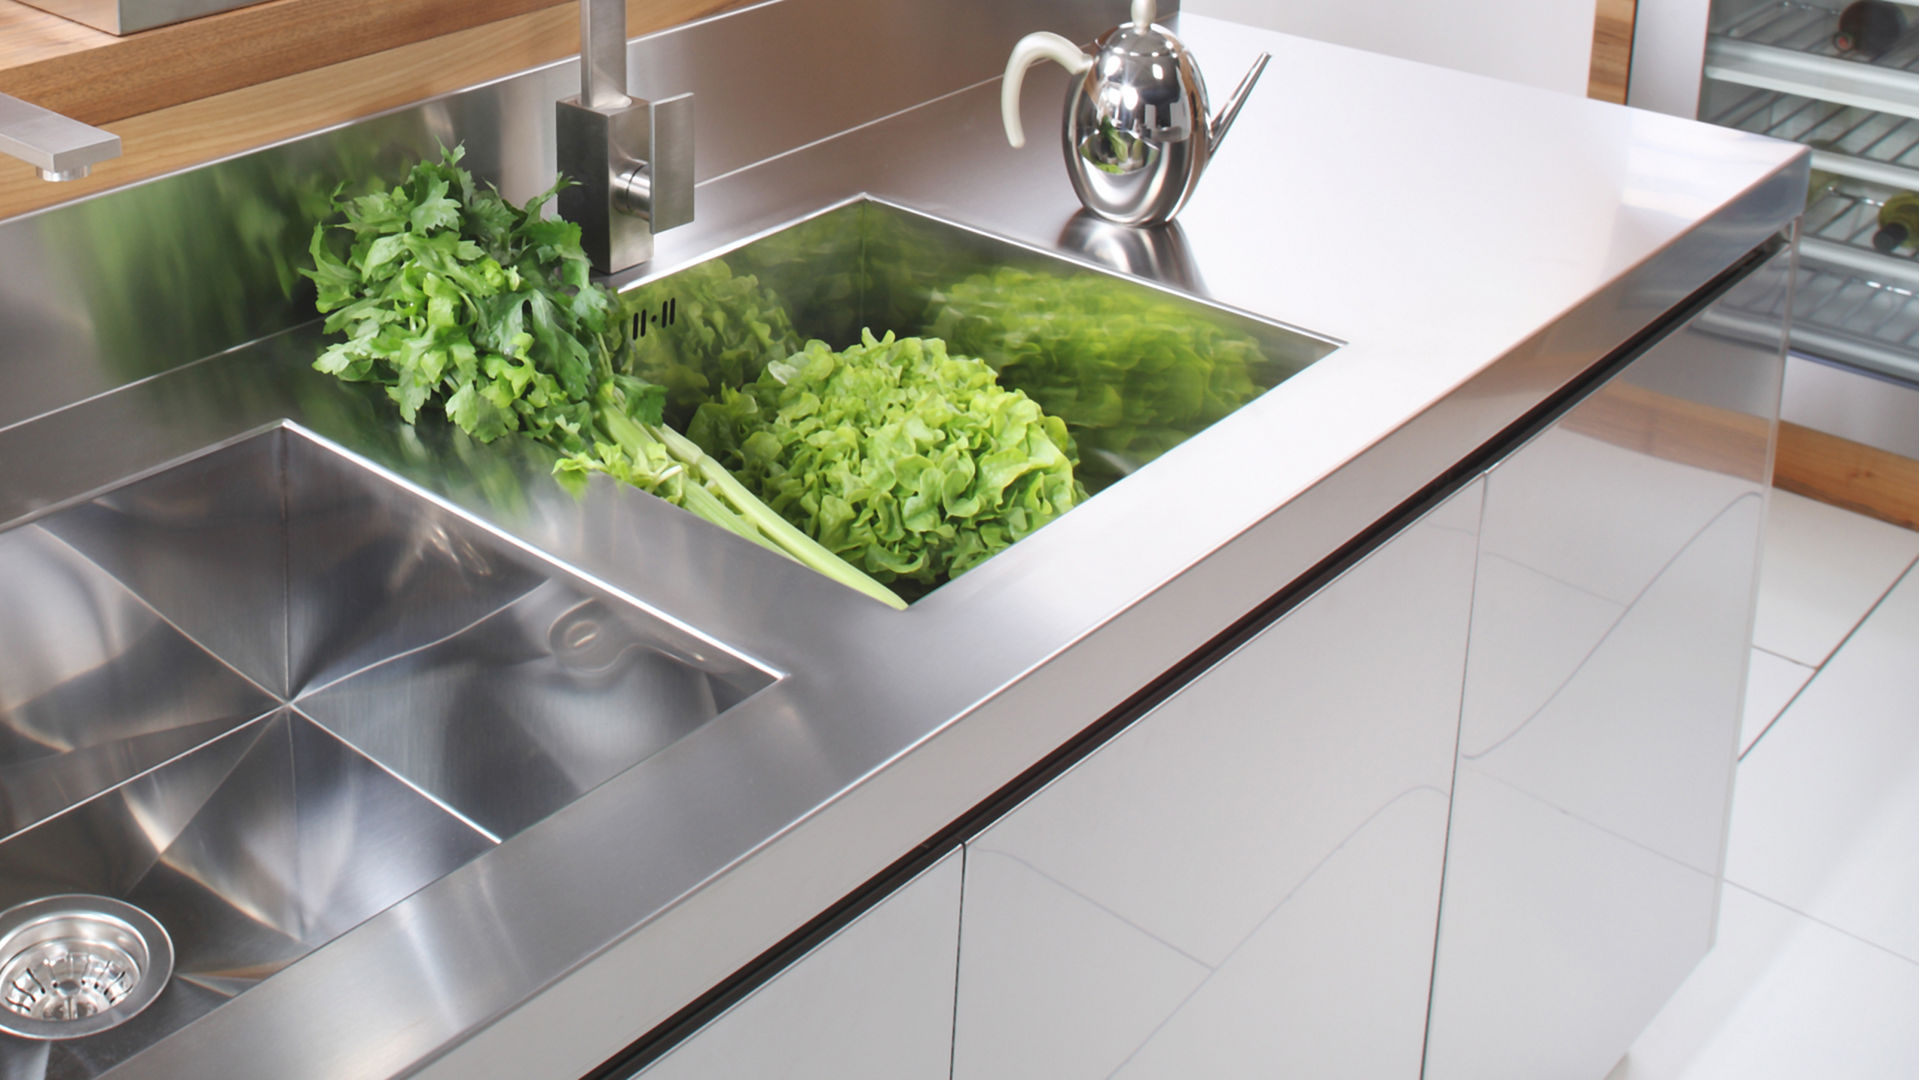 Arca Cucine Italy - Domestic stainless steel kitchens - Handles - Gola 016